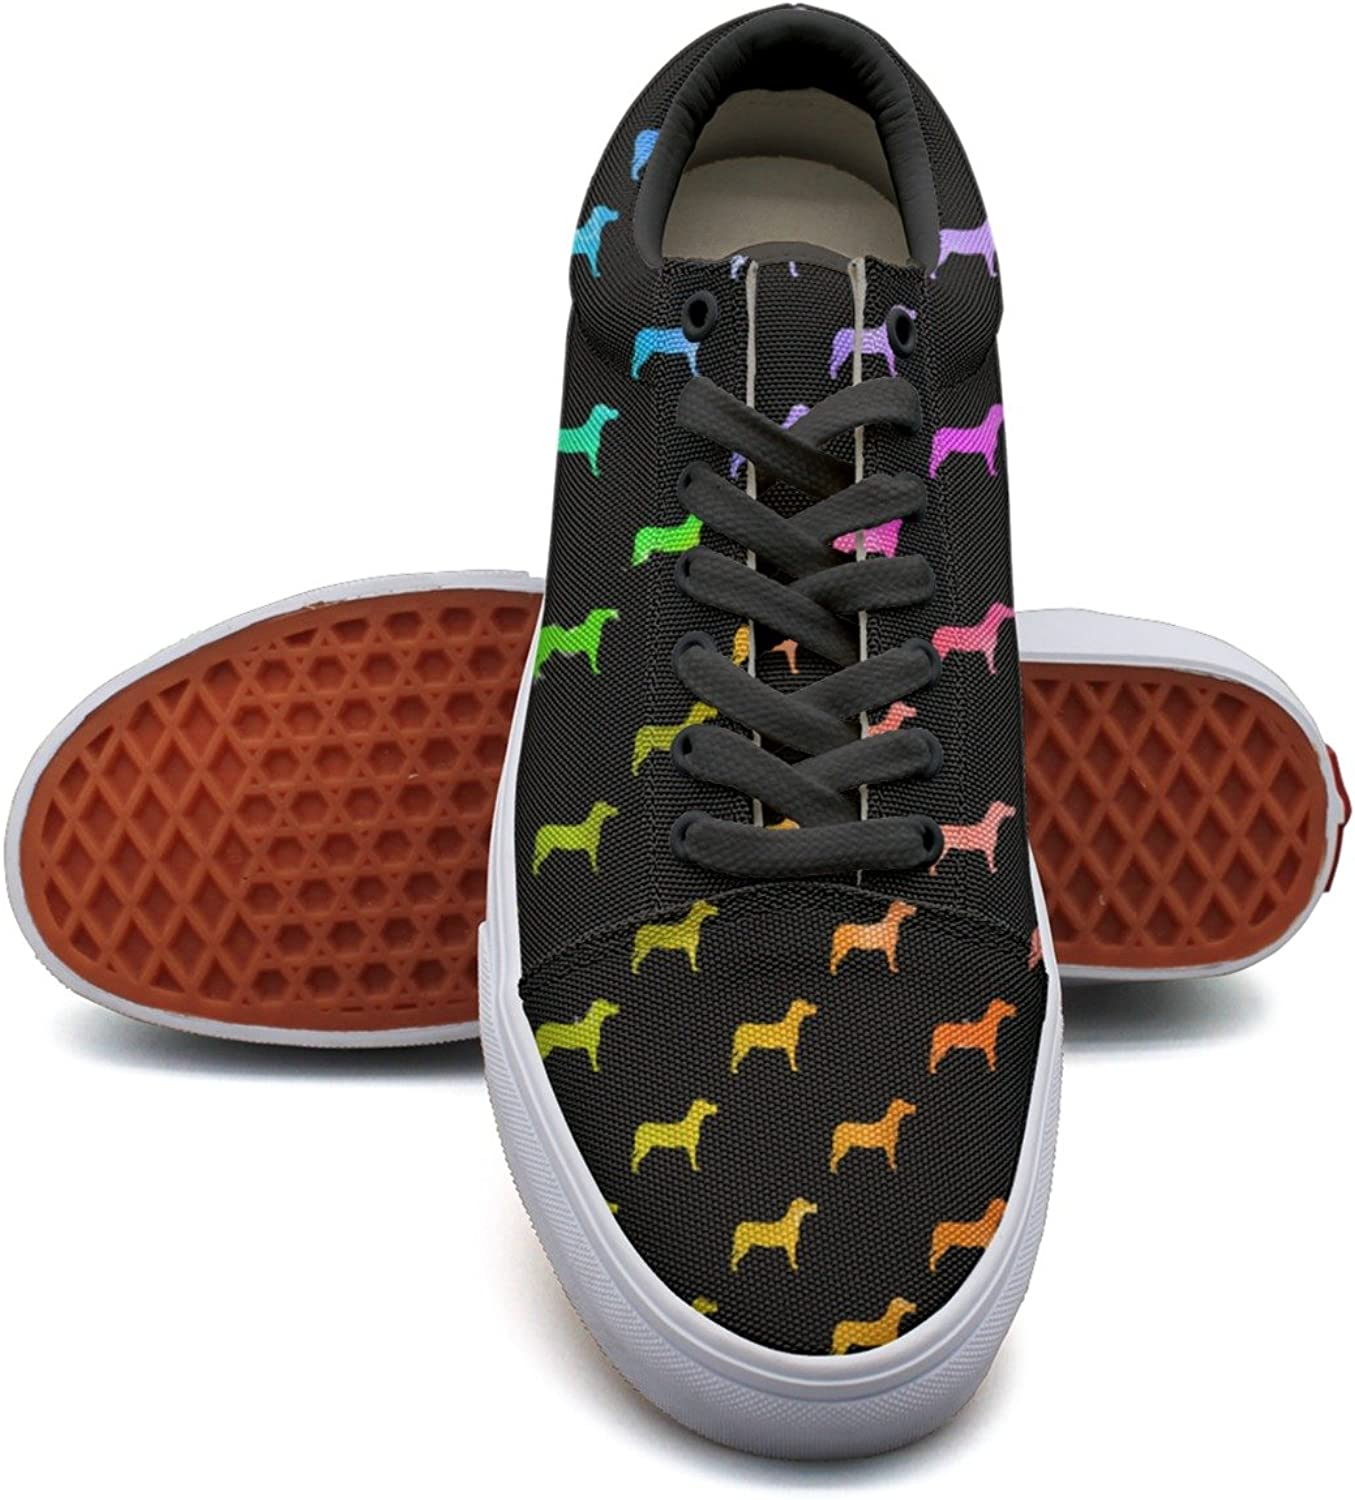 Rainbow Dogs Women's Casual shoes Canvas Lo-Top New Designer